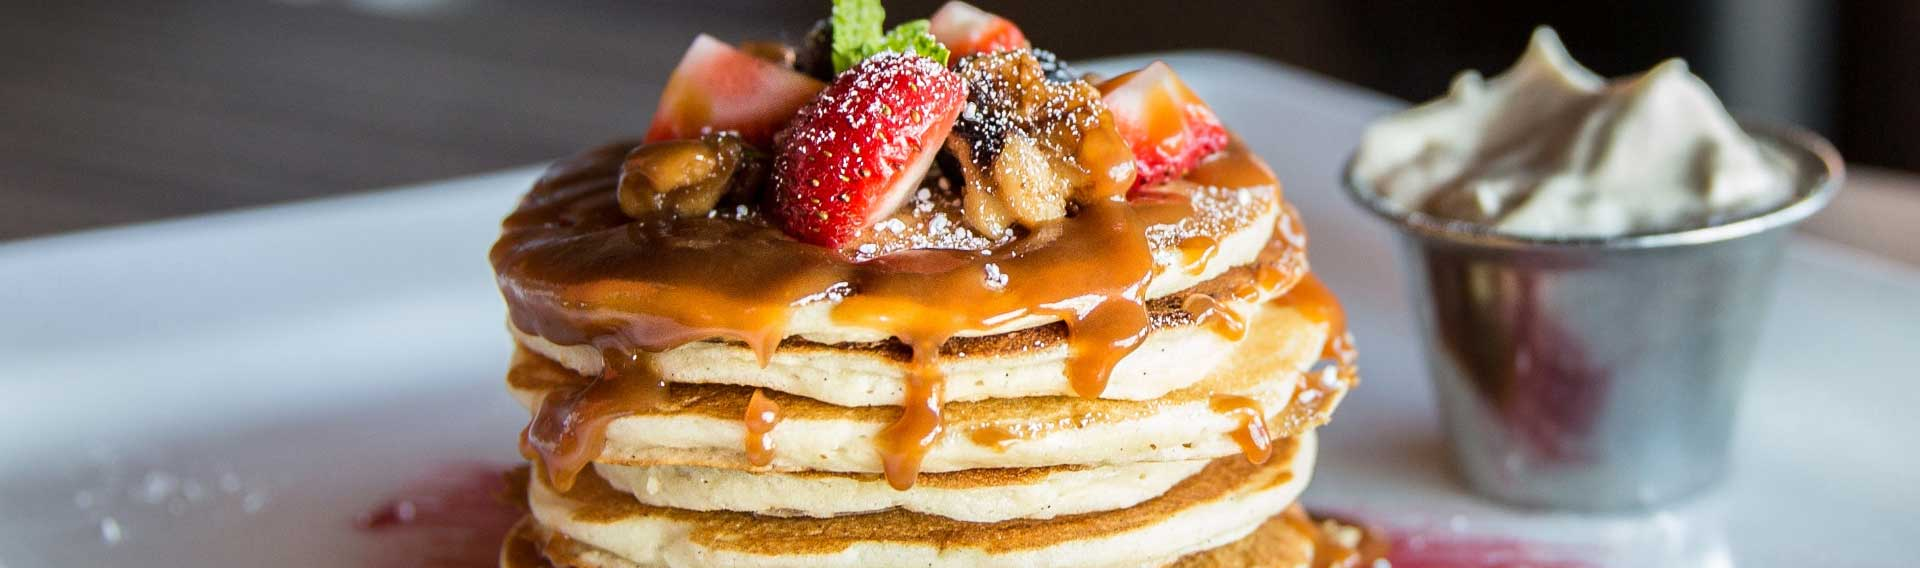 a stack of diner pancakes with syrup and berries and whipped butter on the side